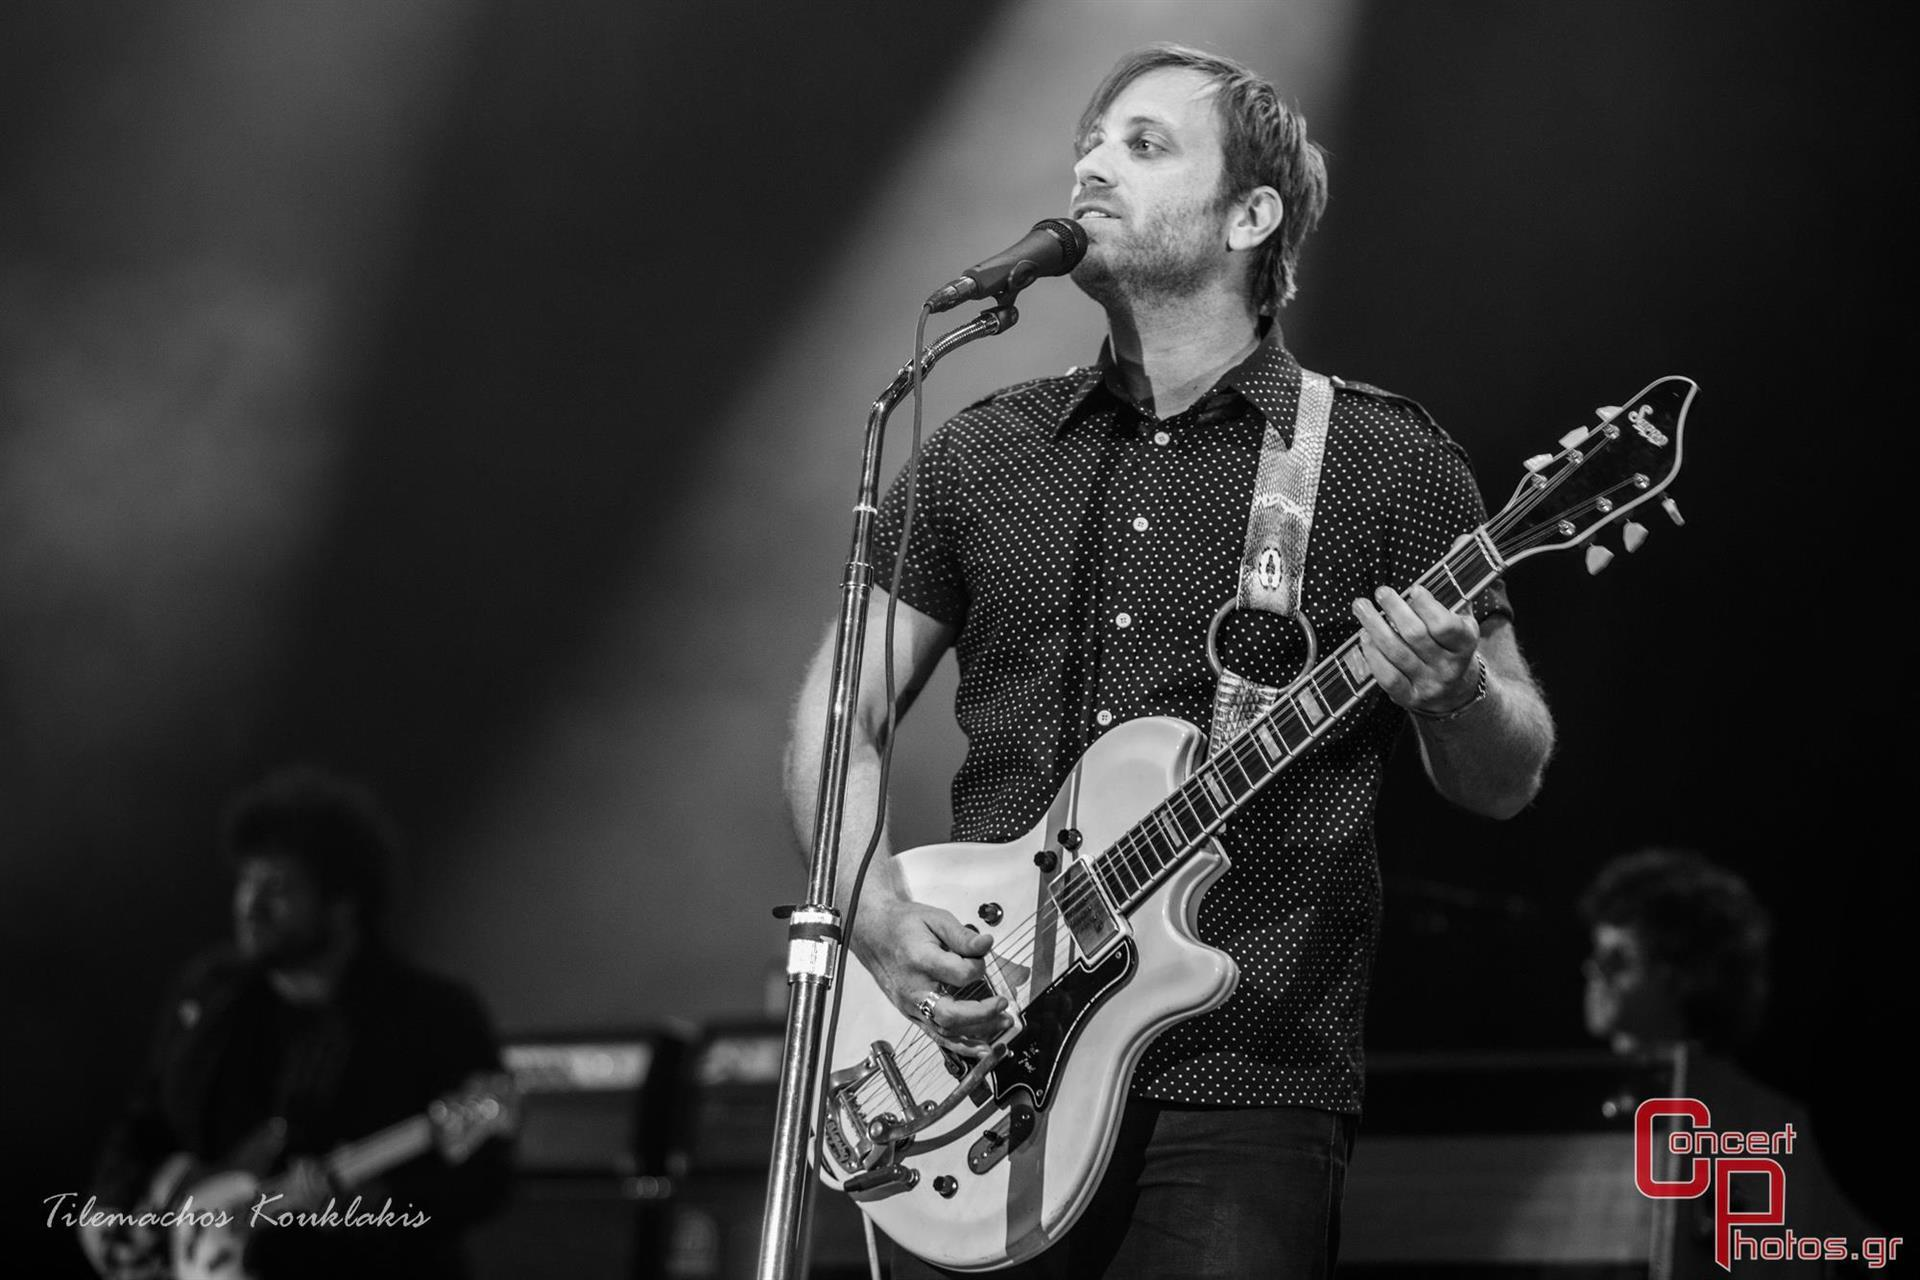 Rockwave 2015 - Black Keys-Black Angels-1000mods-The Big Nose Attack-Puta Volcano-Rockwave 2015 - Black Keys-Black Angels-1000mods photographer:  - 01_Black Keys _12